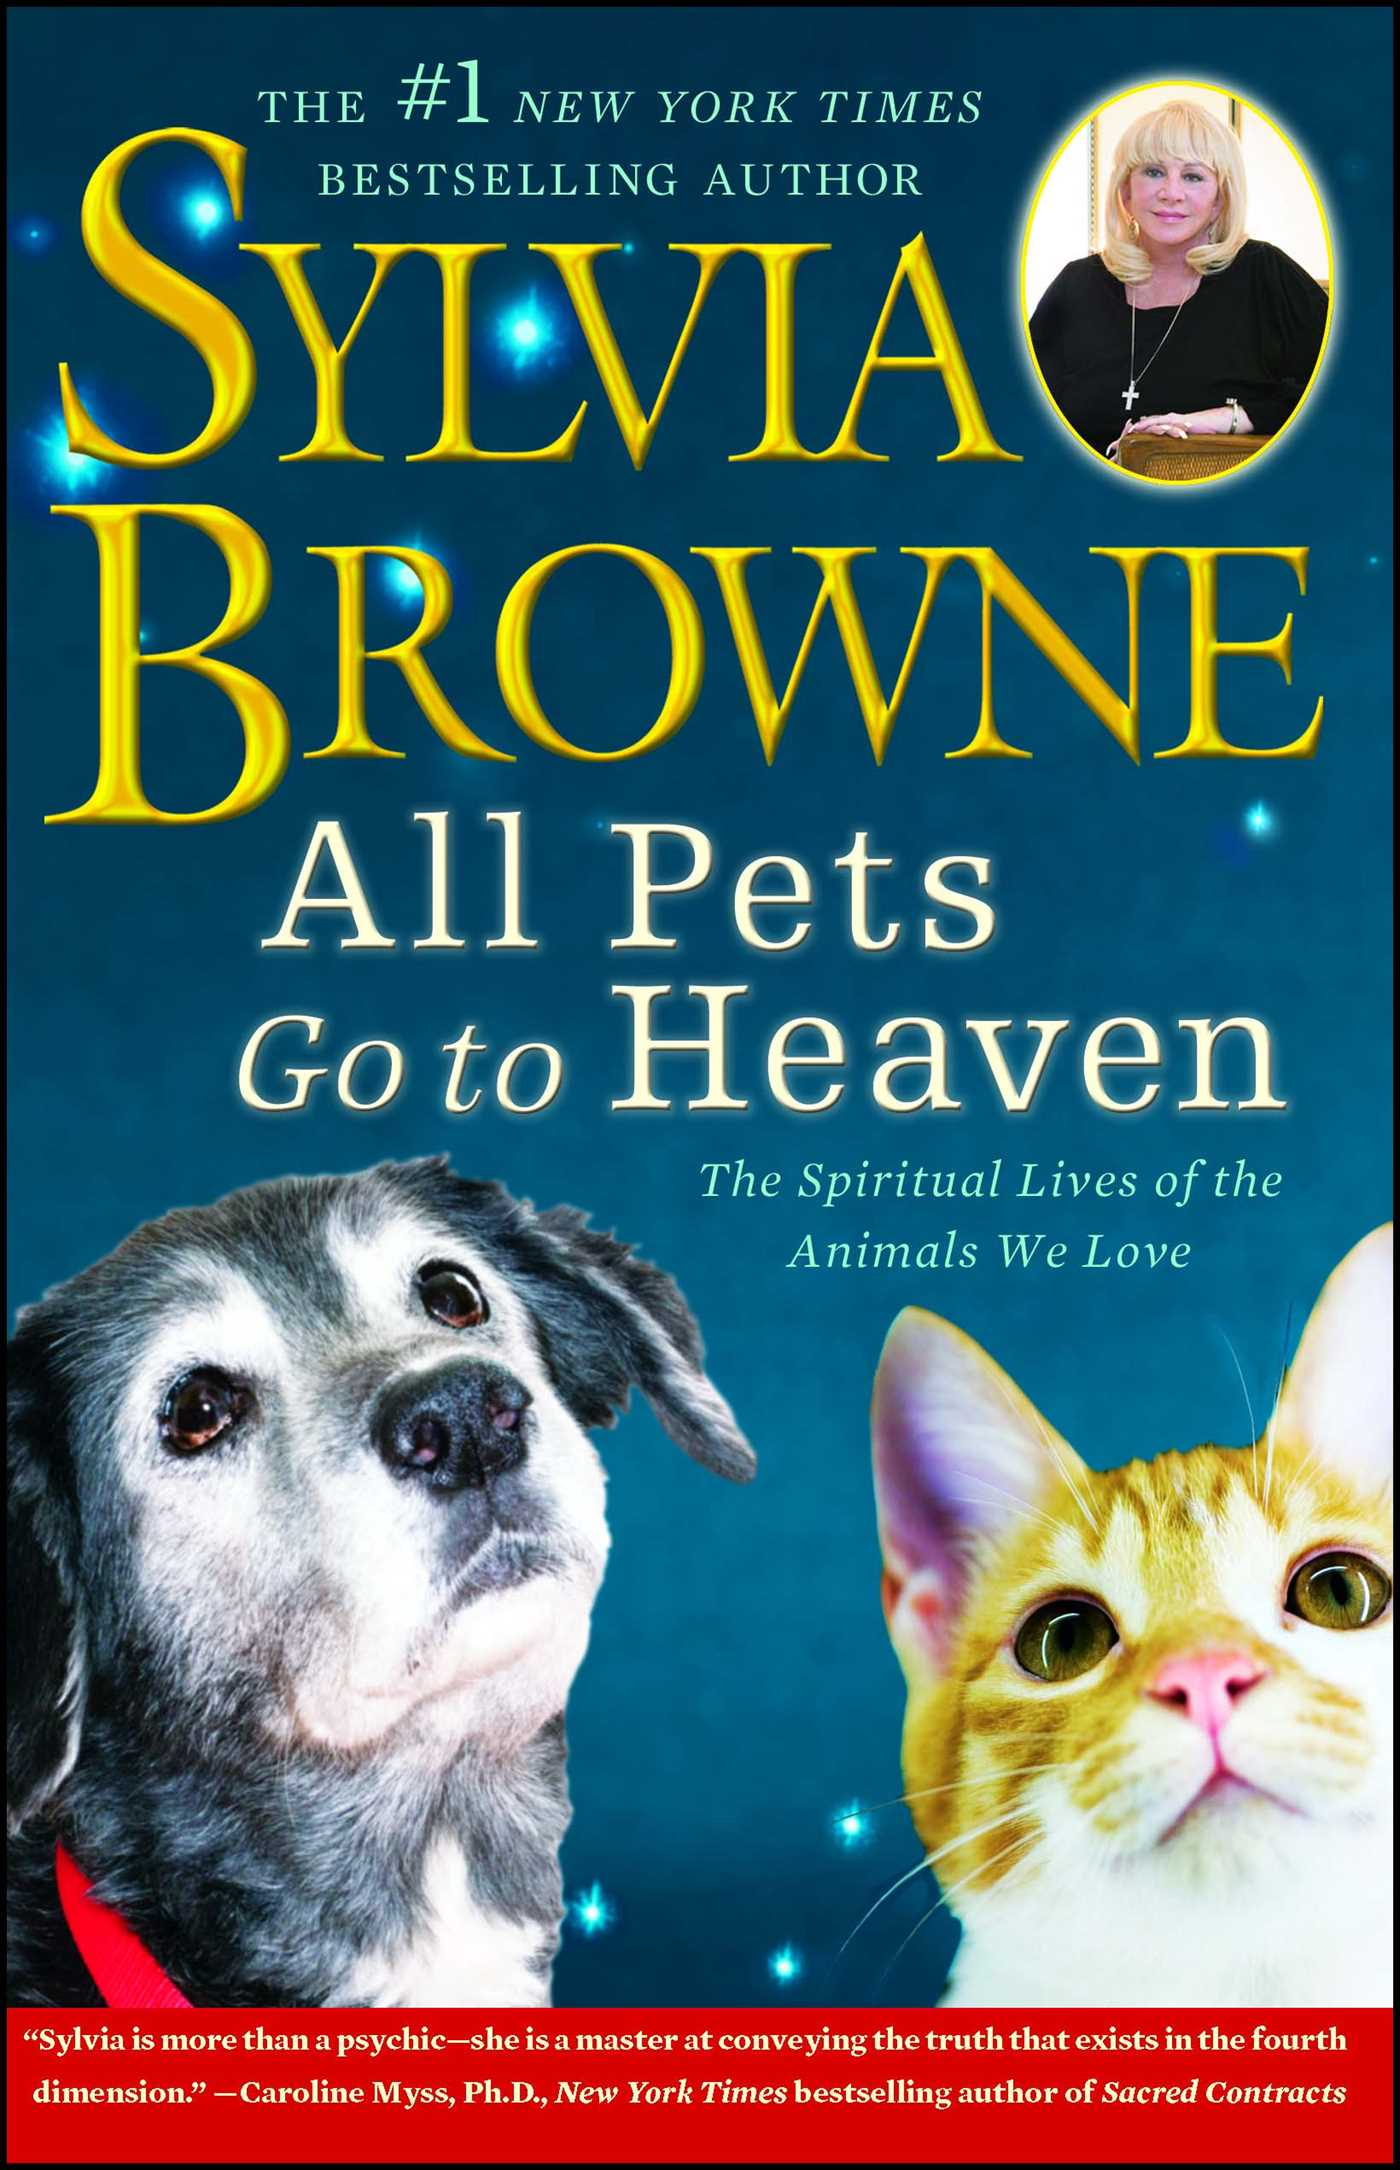 All pets go to heaven 9781416591252 hr